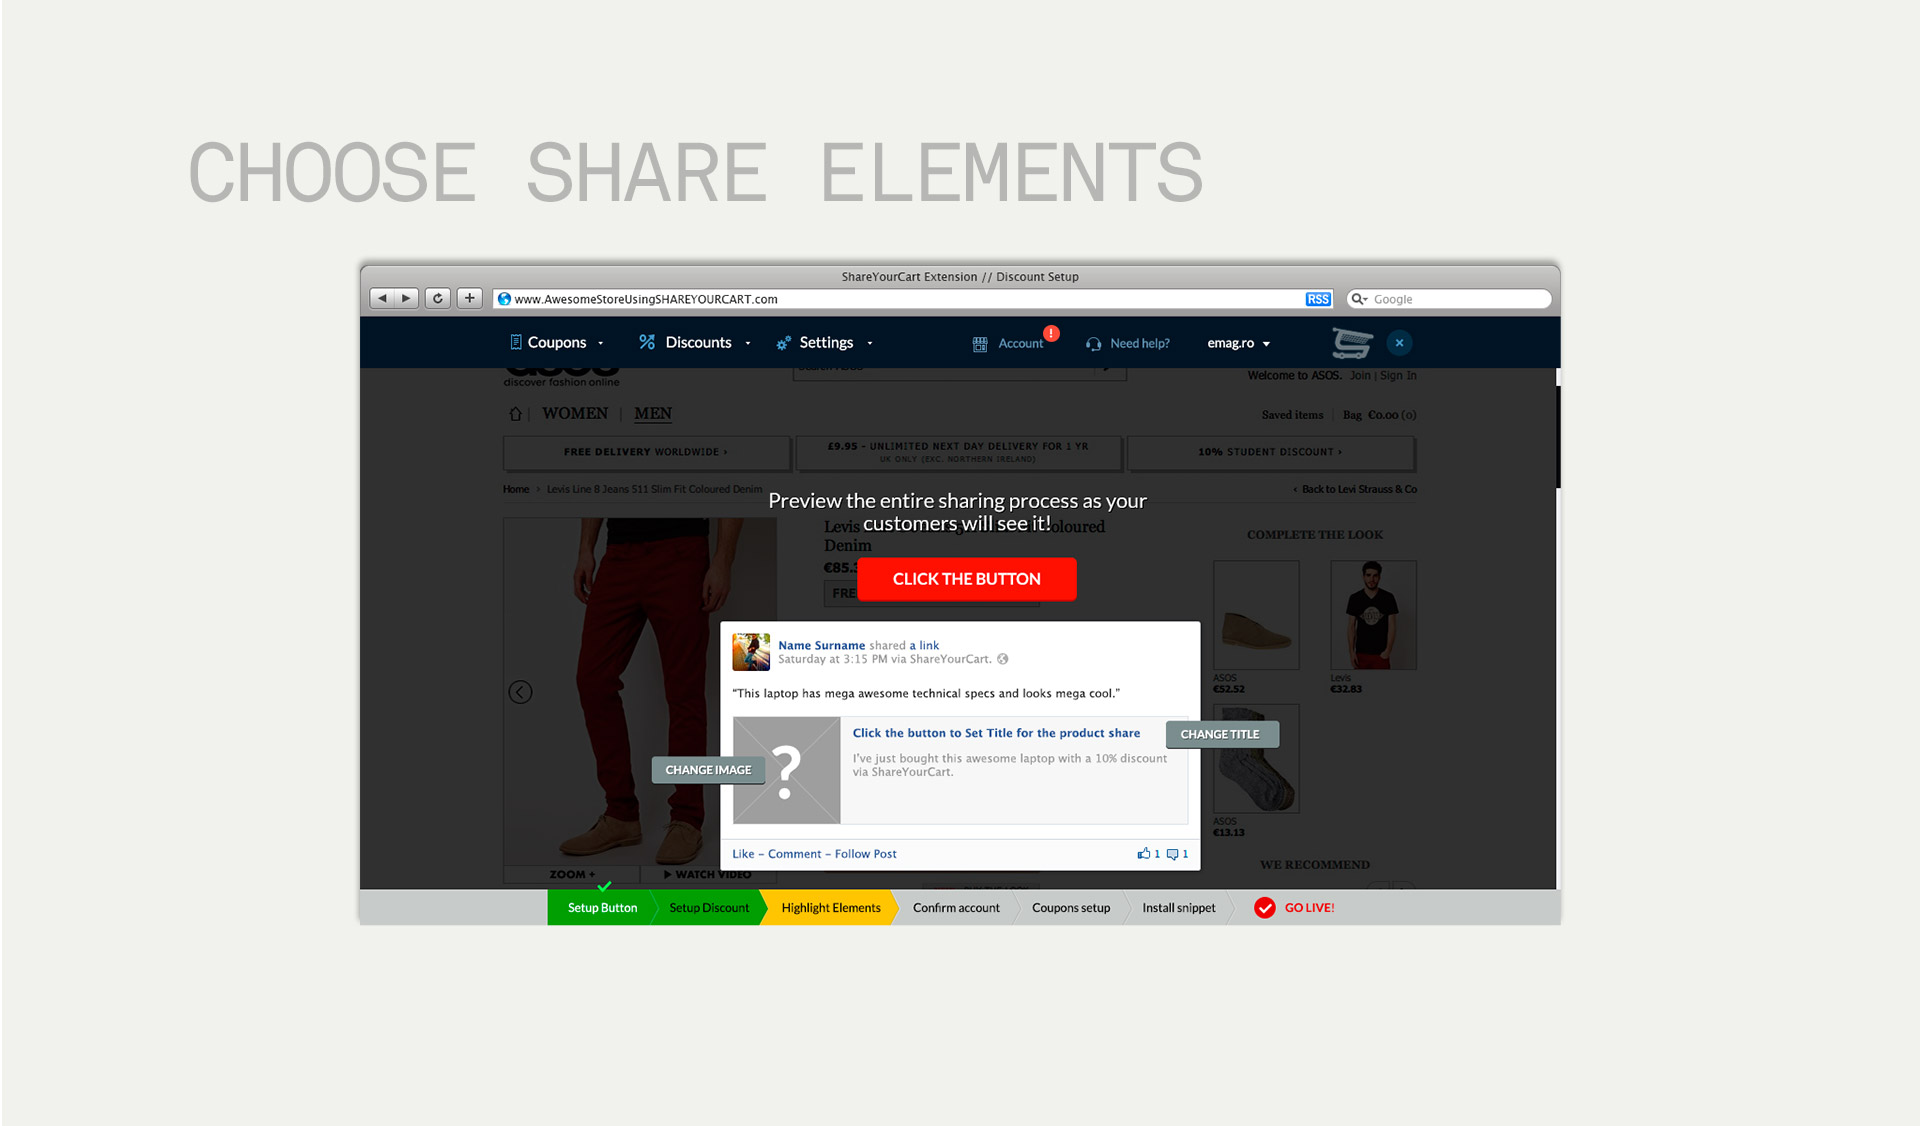 shareyourcart-social-marketing-05